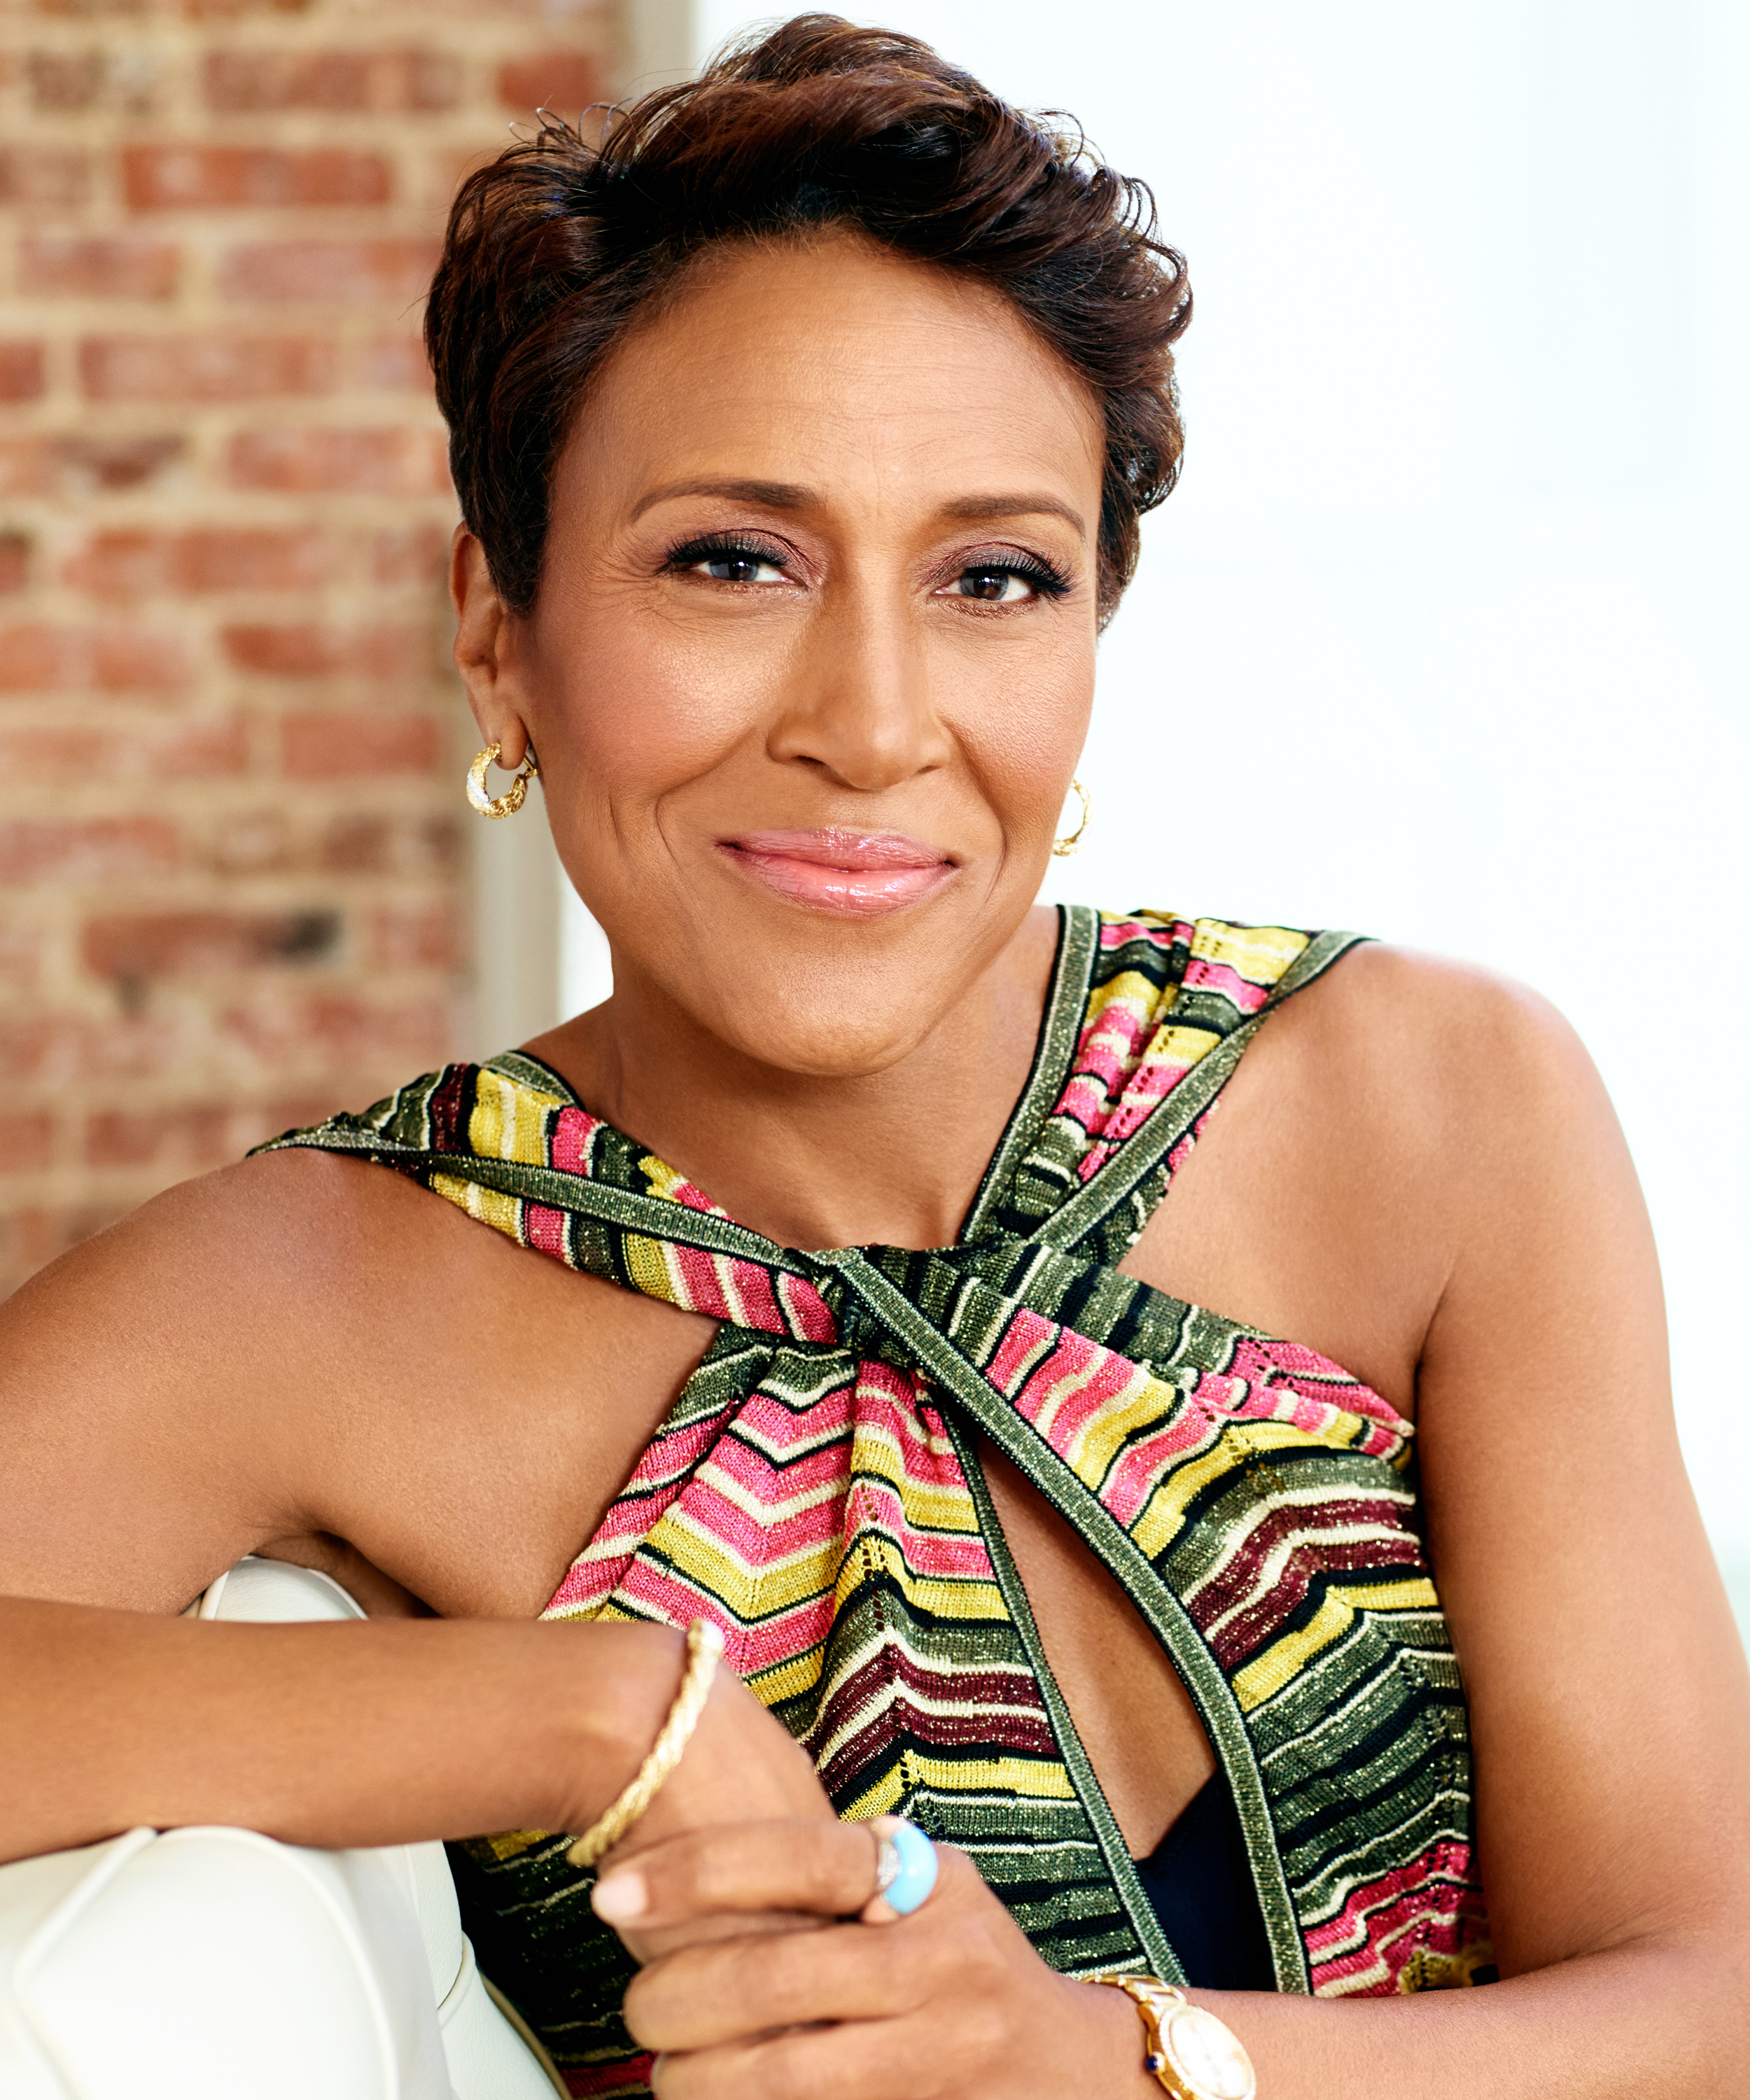 The Story Behind Robin Roberts's Signature Haircut Shows How Far We've Come